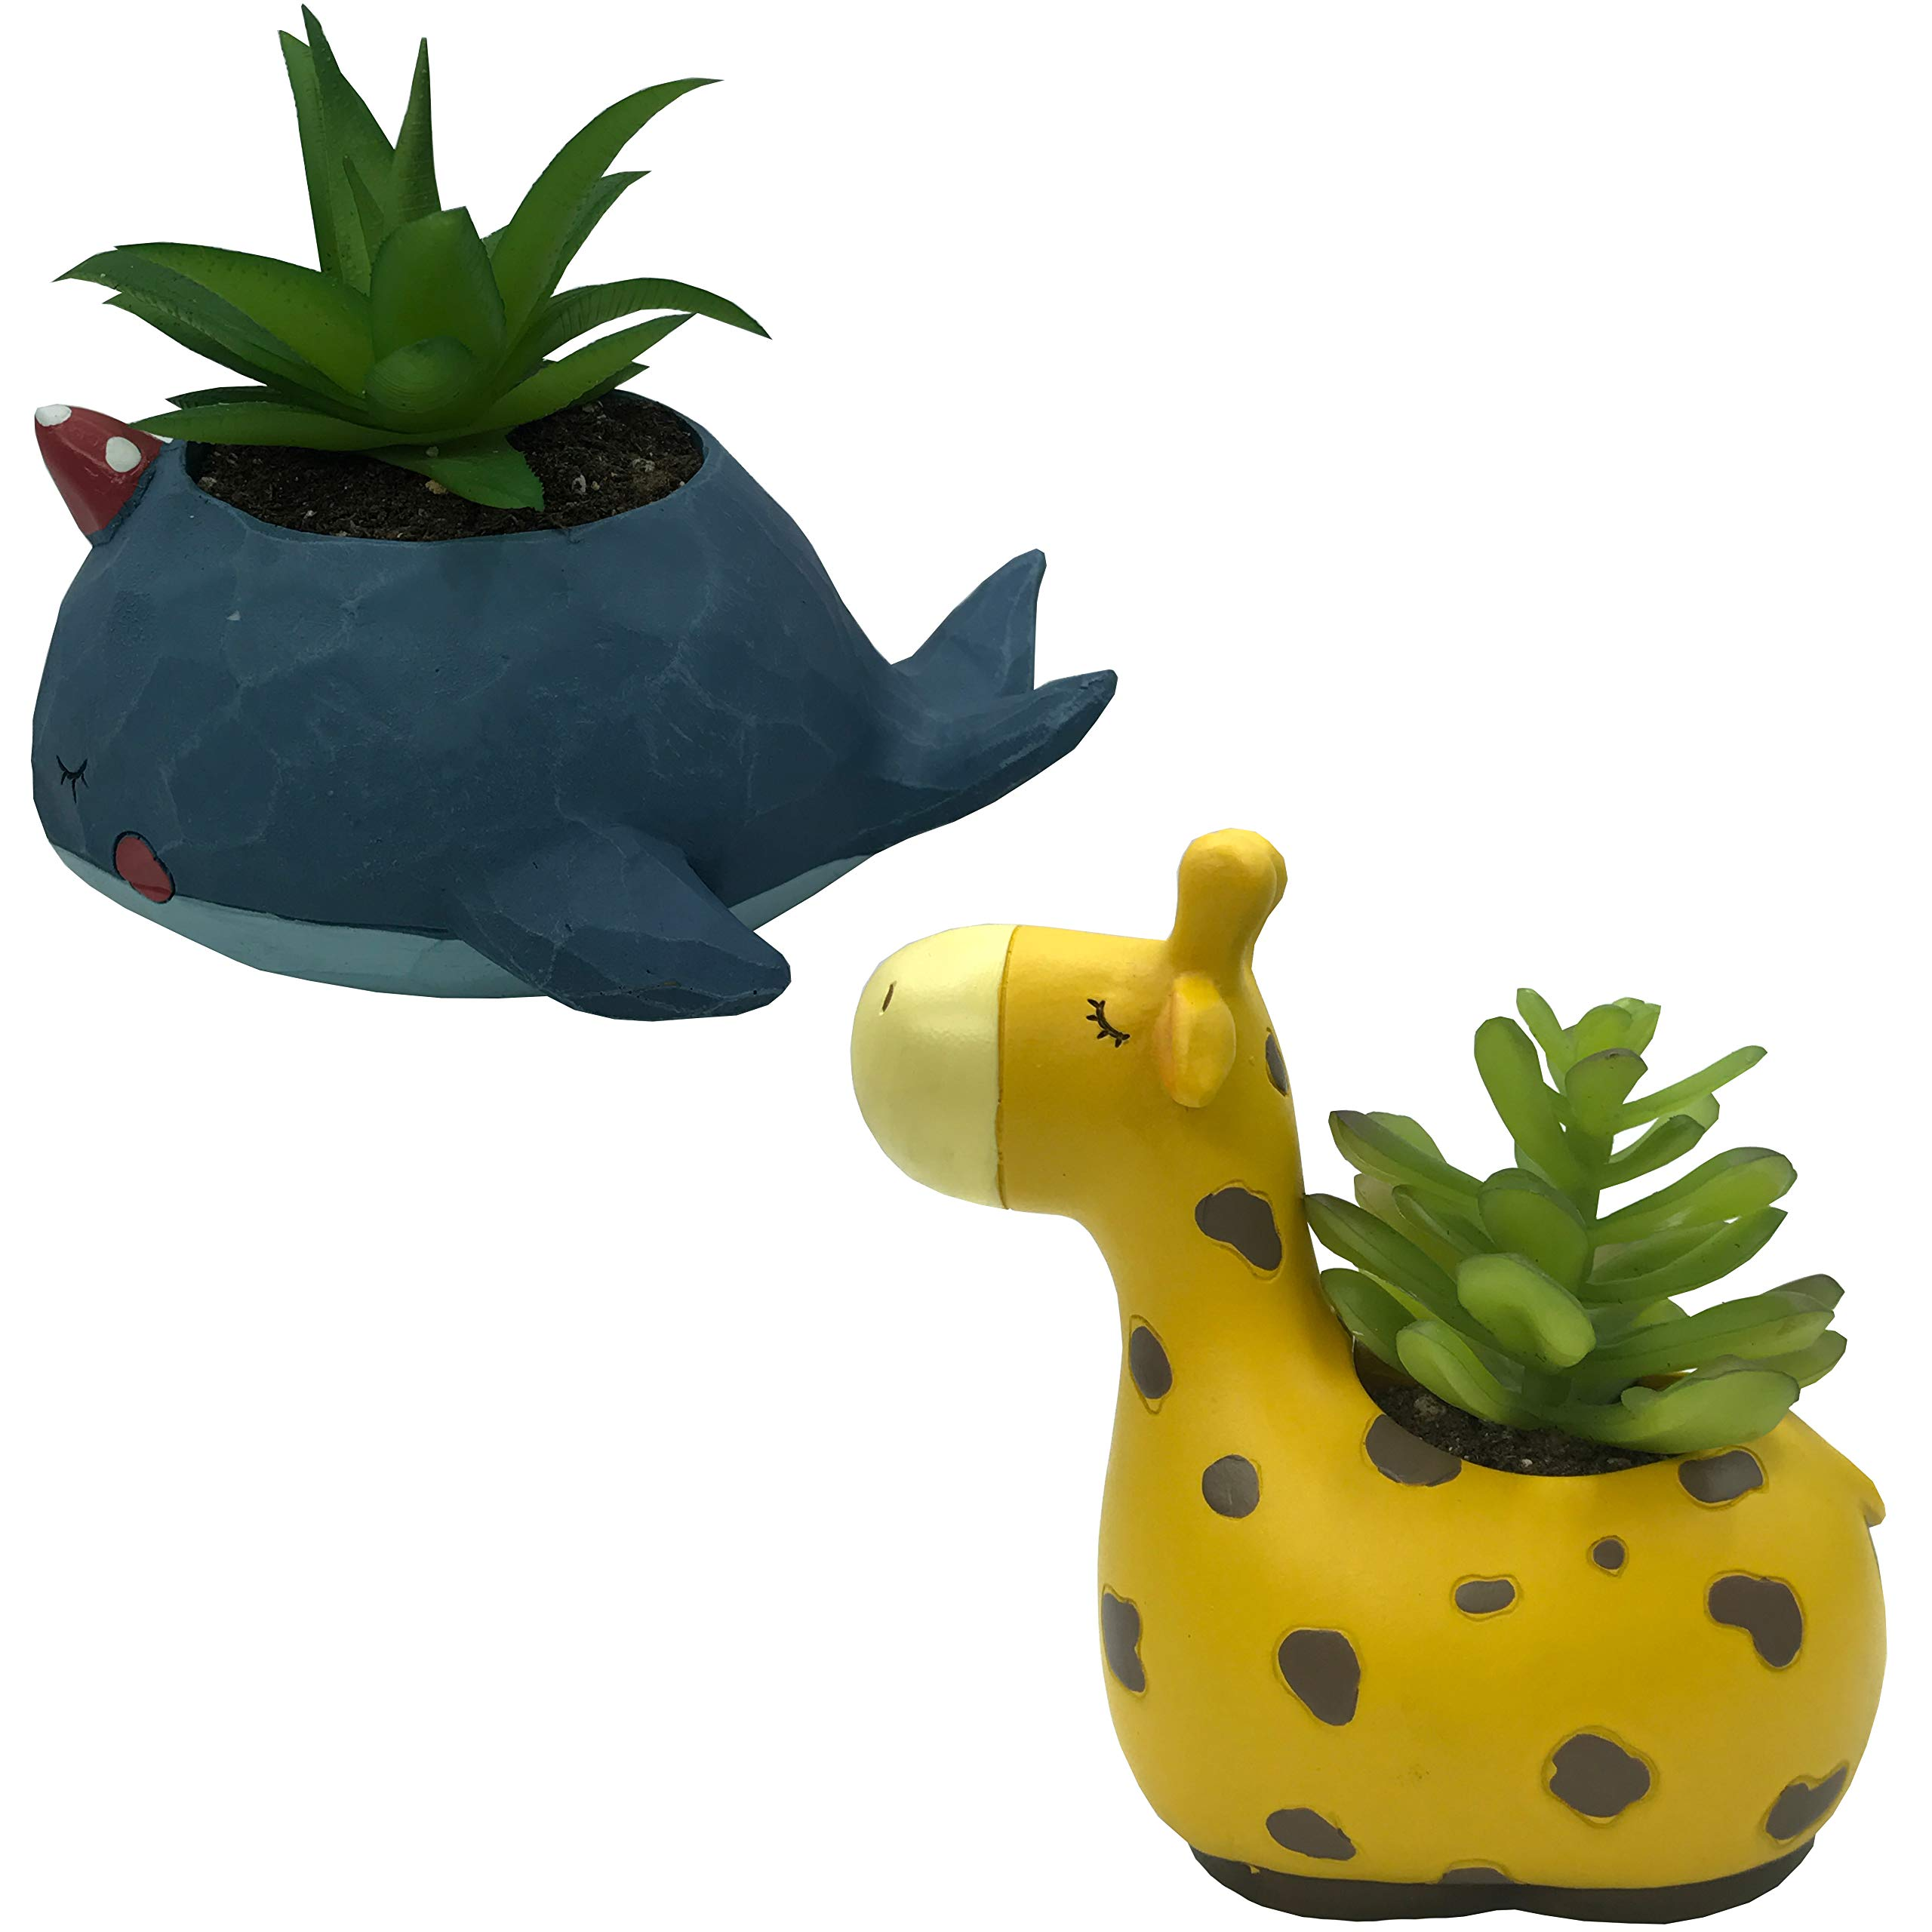 Everyday Better Life 2 PCS Set Cute Cartoon Animal Giraffe Whale Shaped Succulent Cactus Vase Flower Pot for Home Garden Office Desktop Decoration (Plants Not Included)